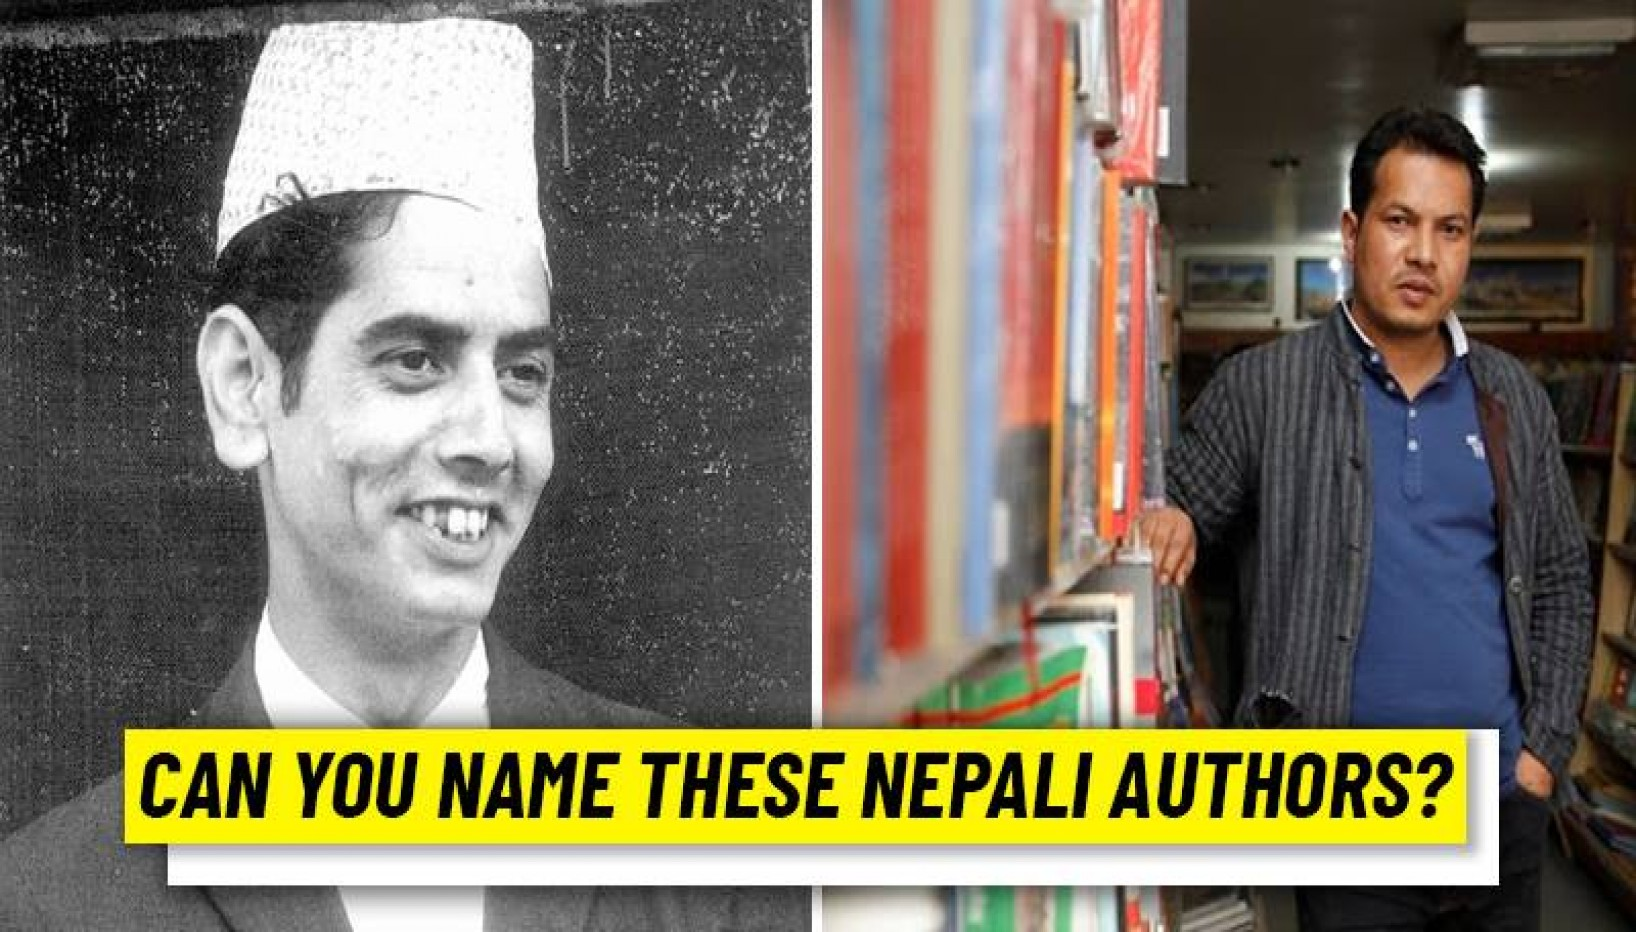 QUIZ: Can You Name These Iconic Nepali Authors Based Off Their Pictures And A Clue?